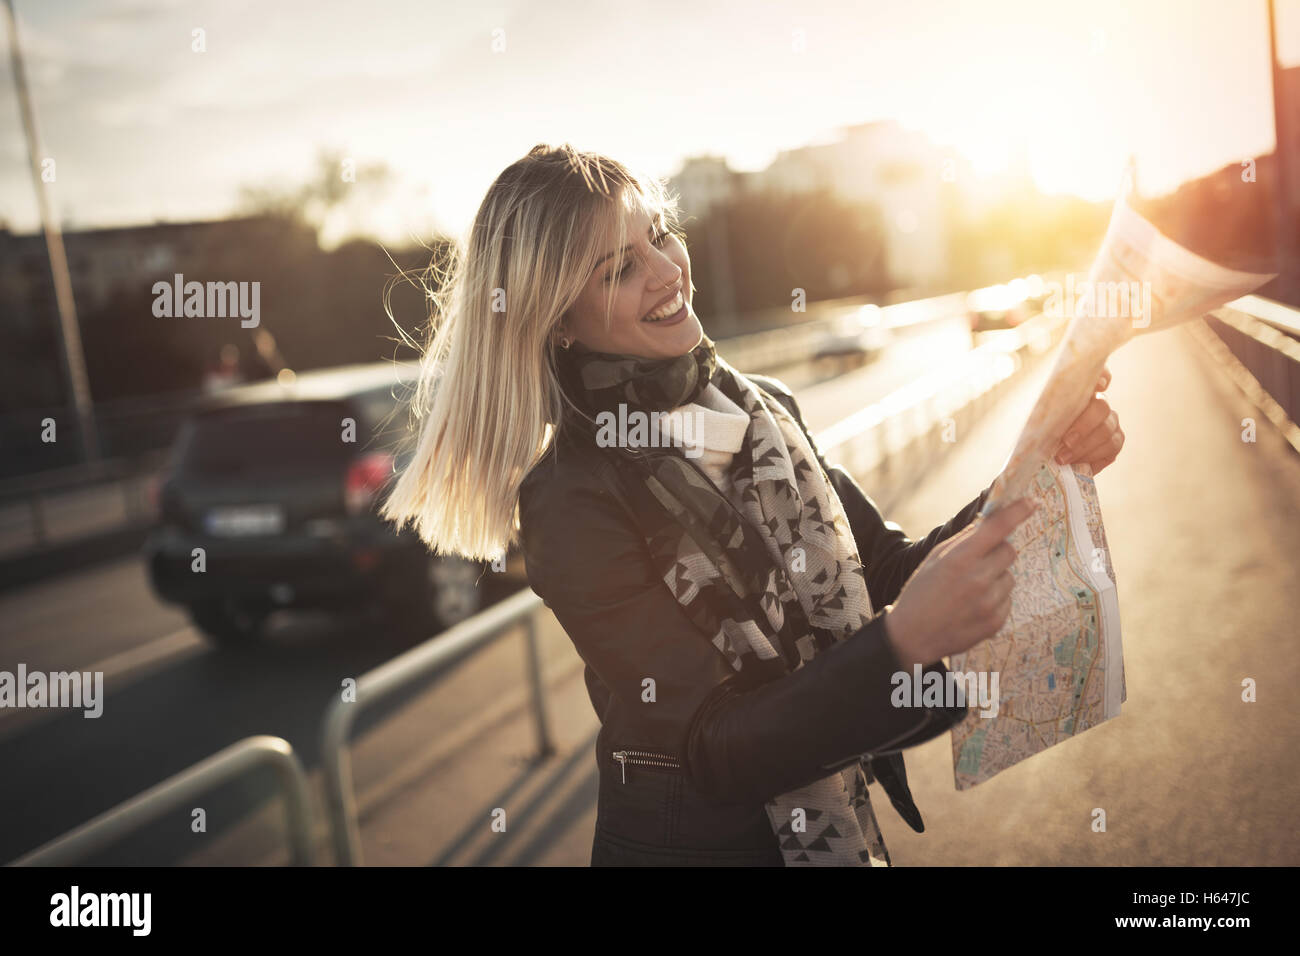 Tourist woman holding travelers map  to travel to destination - Stock Image